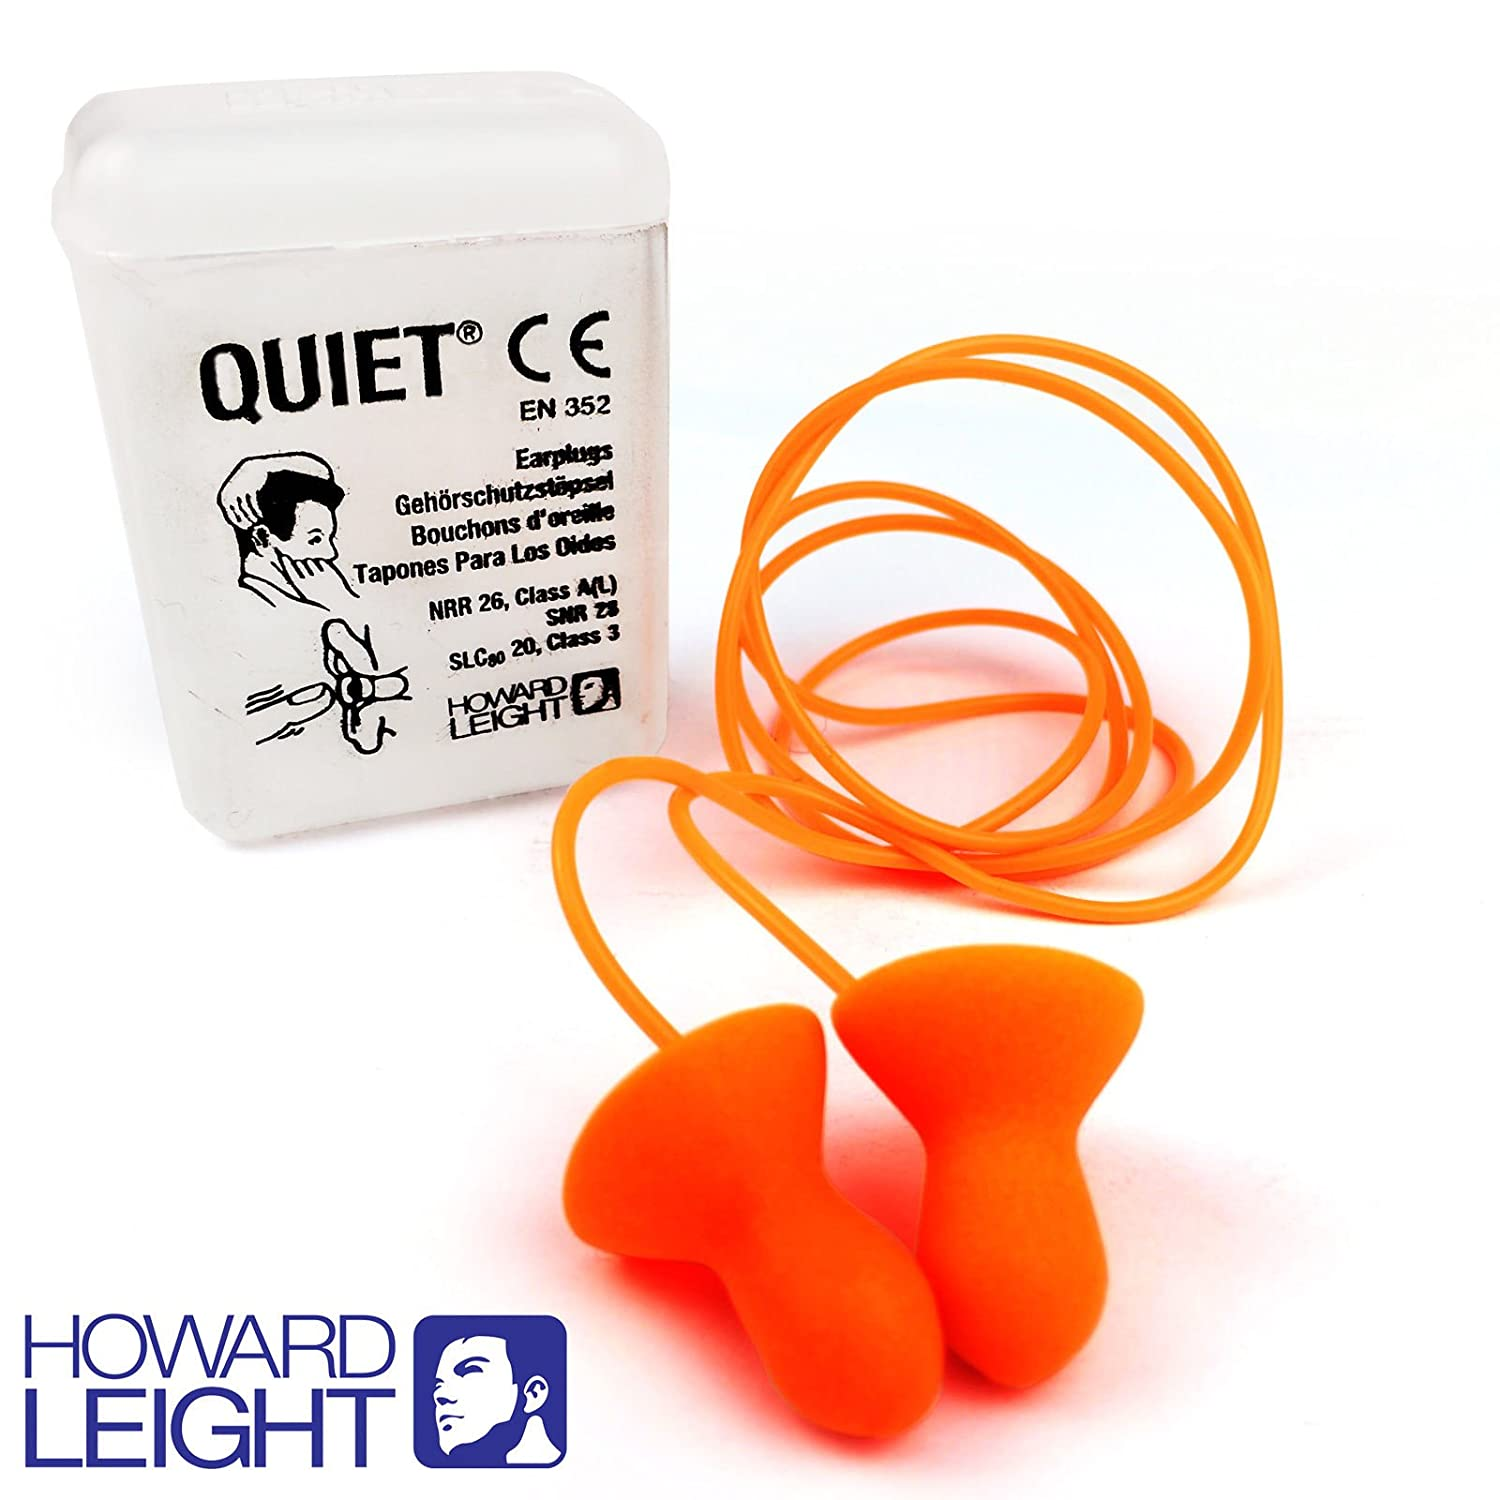 HOWARD LEIGHT SMARTFIT REUSABLE CORDED EAR PLUGS 1 PAIR FREE DELIVERY